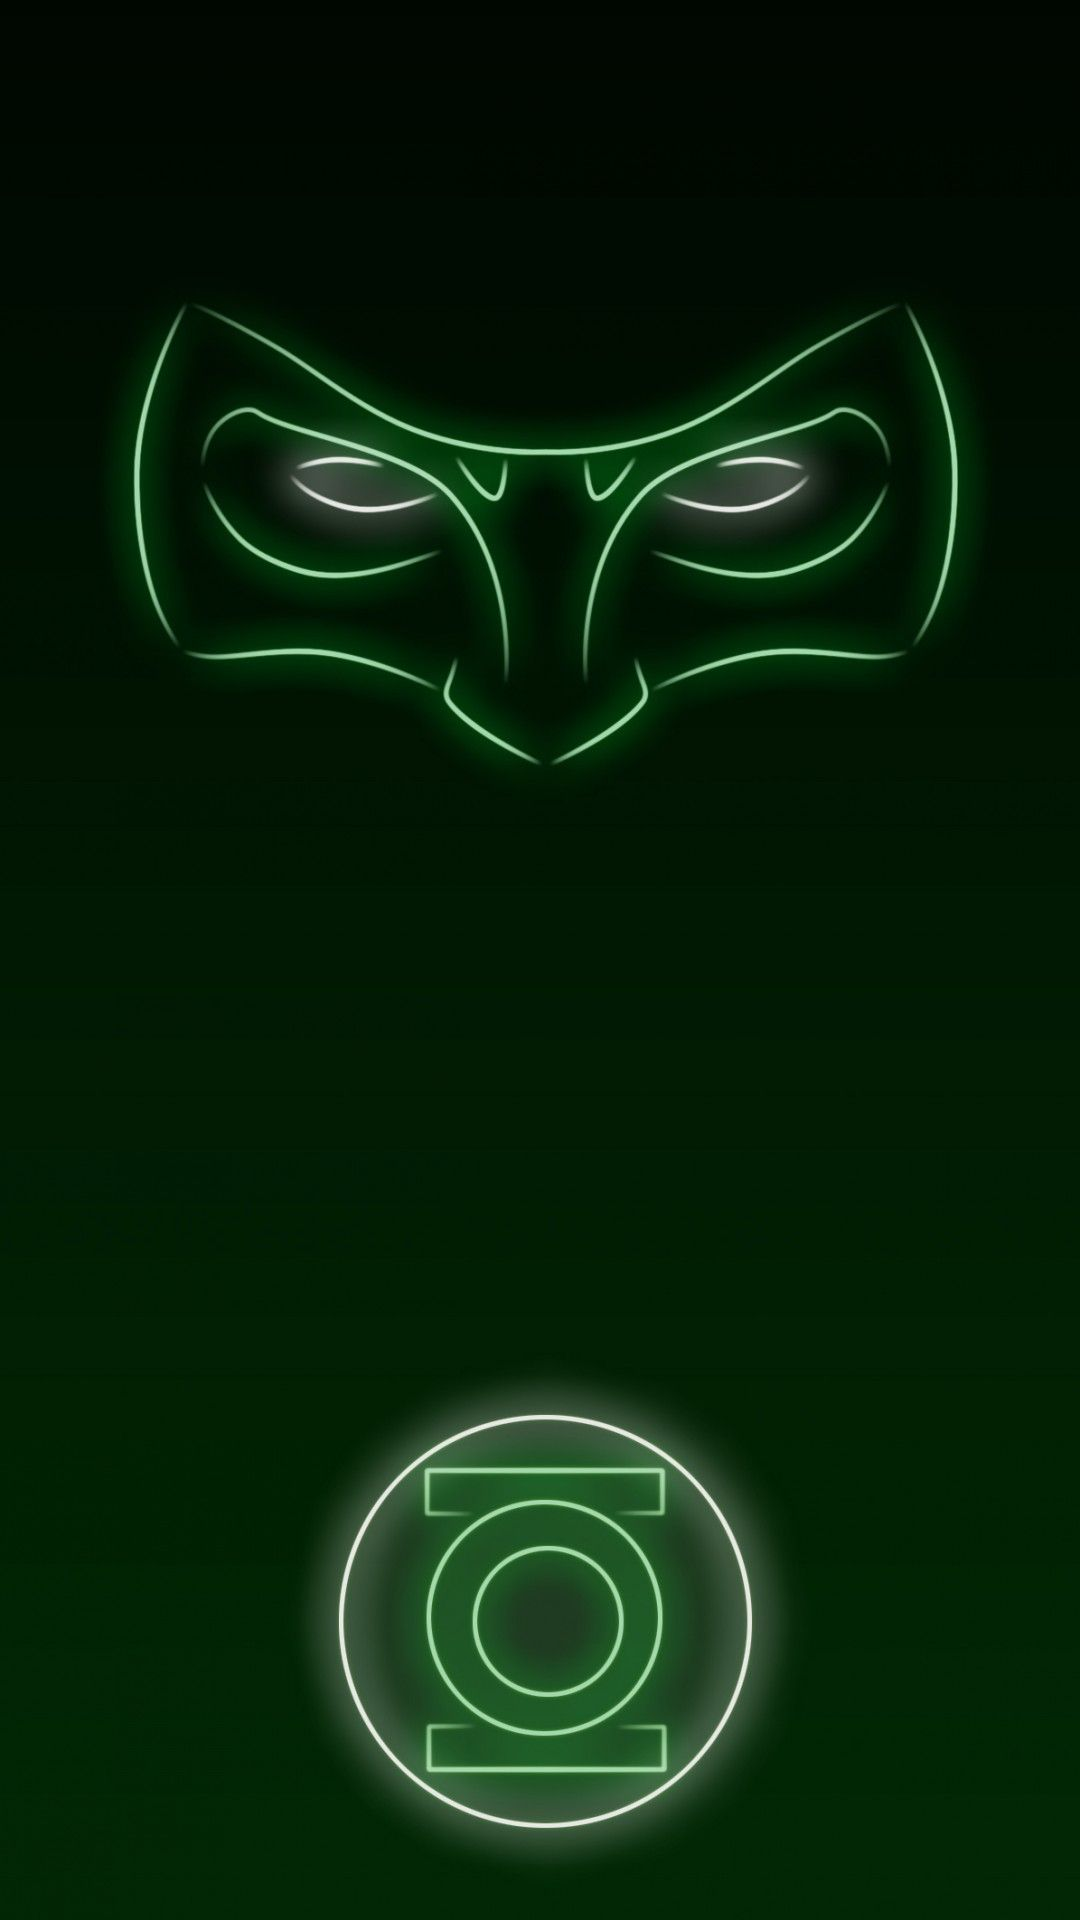 1080x1920 Download Neon Light Hero Green Lantern 1080 x 1920 ...